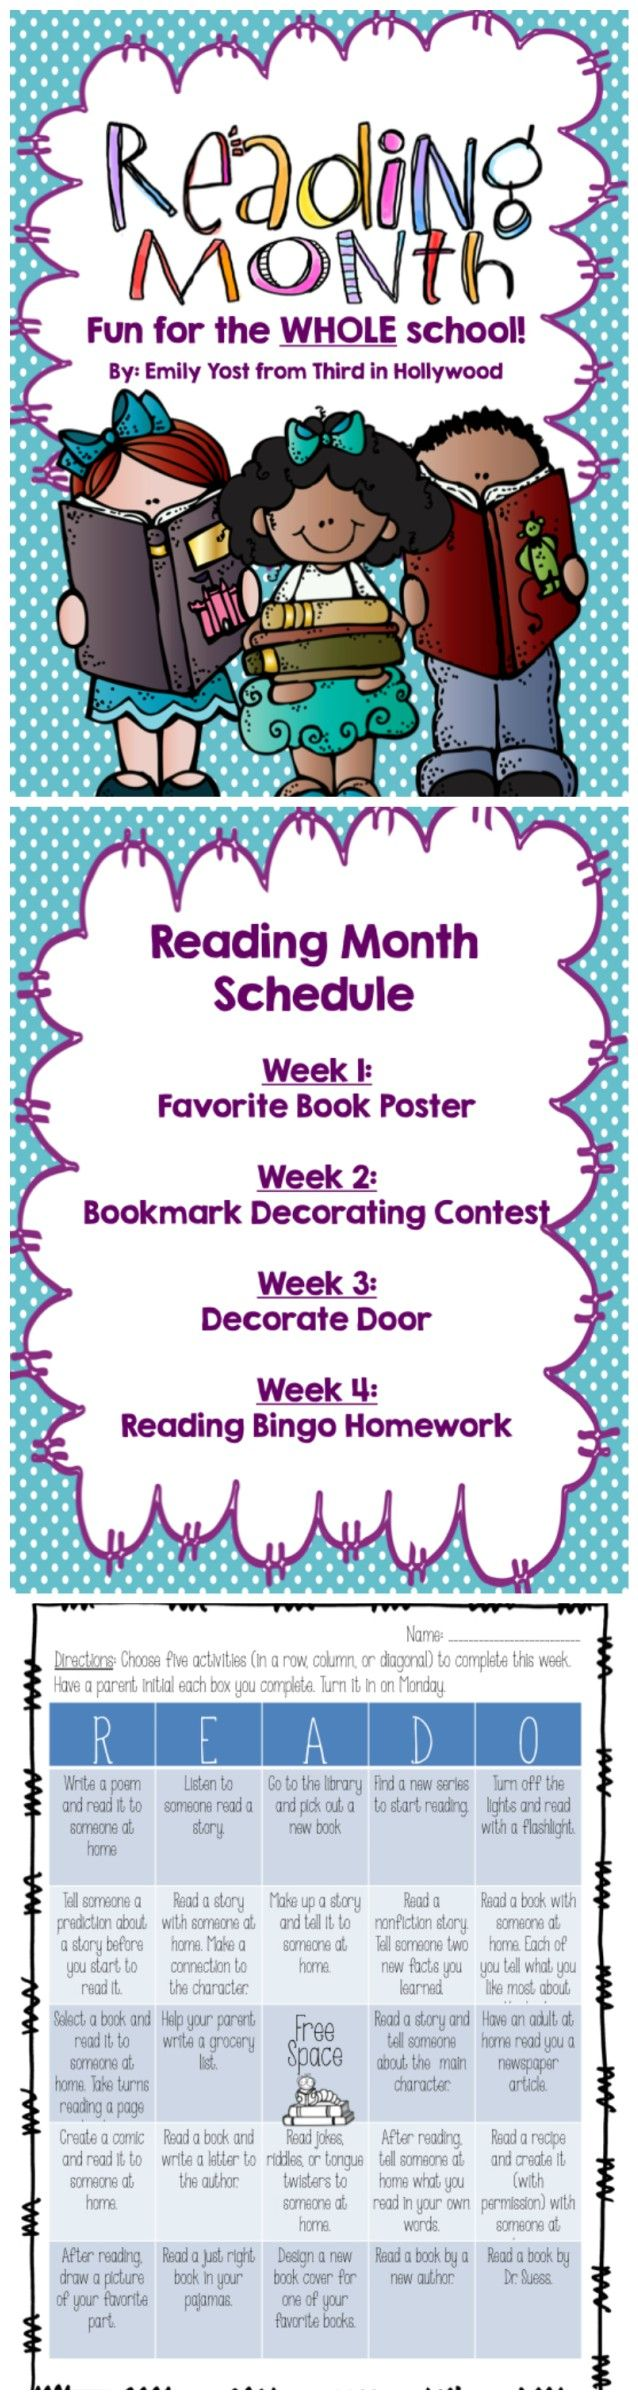 March is Reading Month- Whole School Reading Activities for the Entire Month